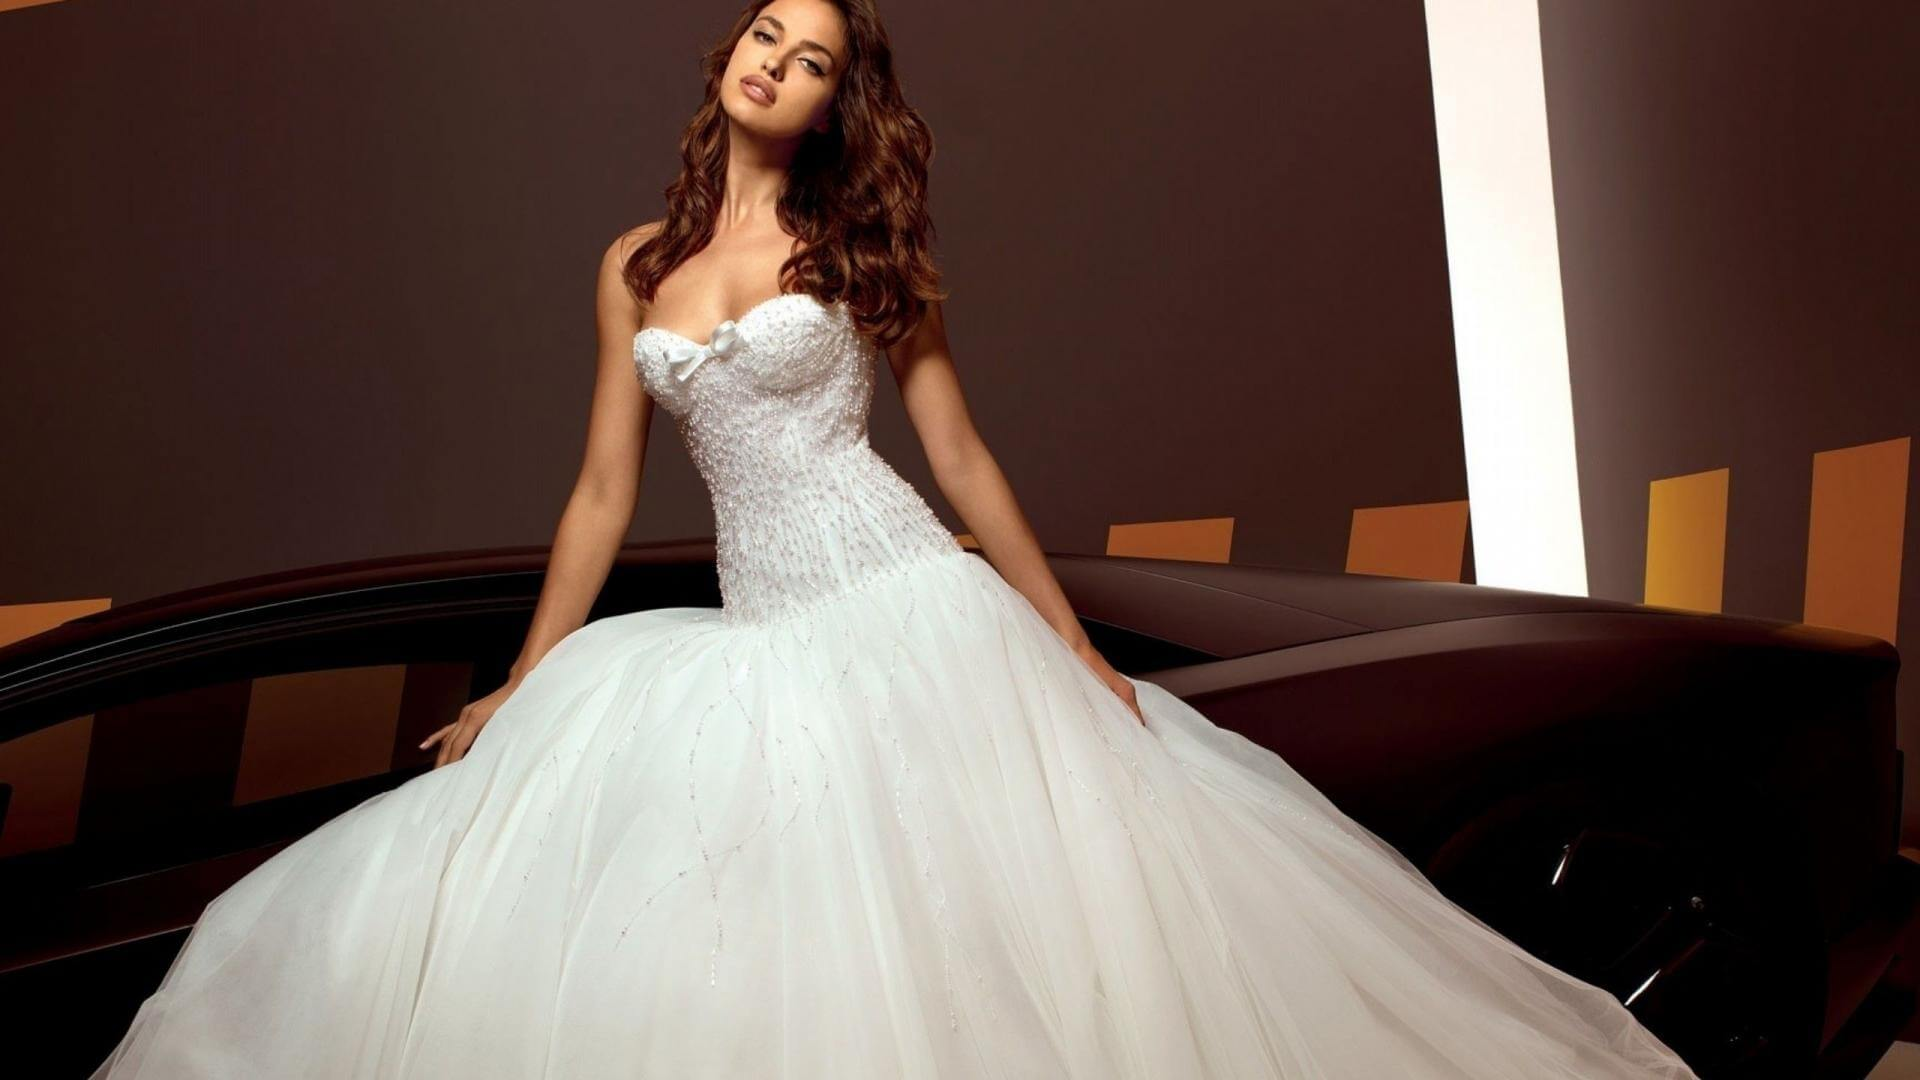 The-most-expensive-wedding-dresses-8 (1)